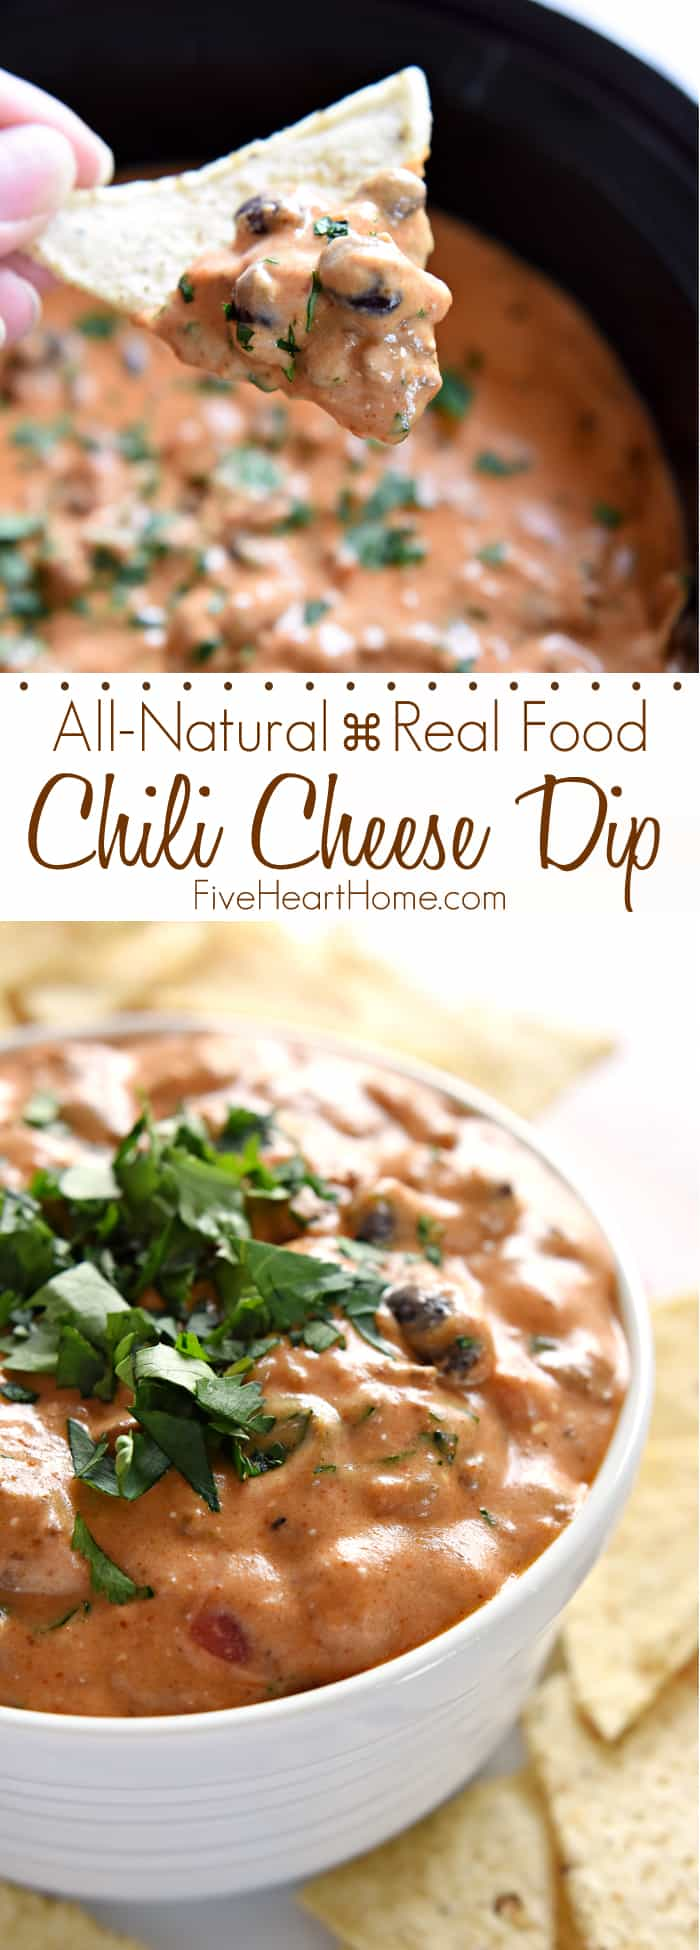 All-Natural Chili Cheese Dip ~ this decadent, creamy, real food version of Chili's Skillet Queso features from-scratch chili, homemade cheddar cheese sauce, and no processed ingredients! | FiveHeartHome.com